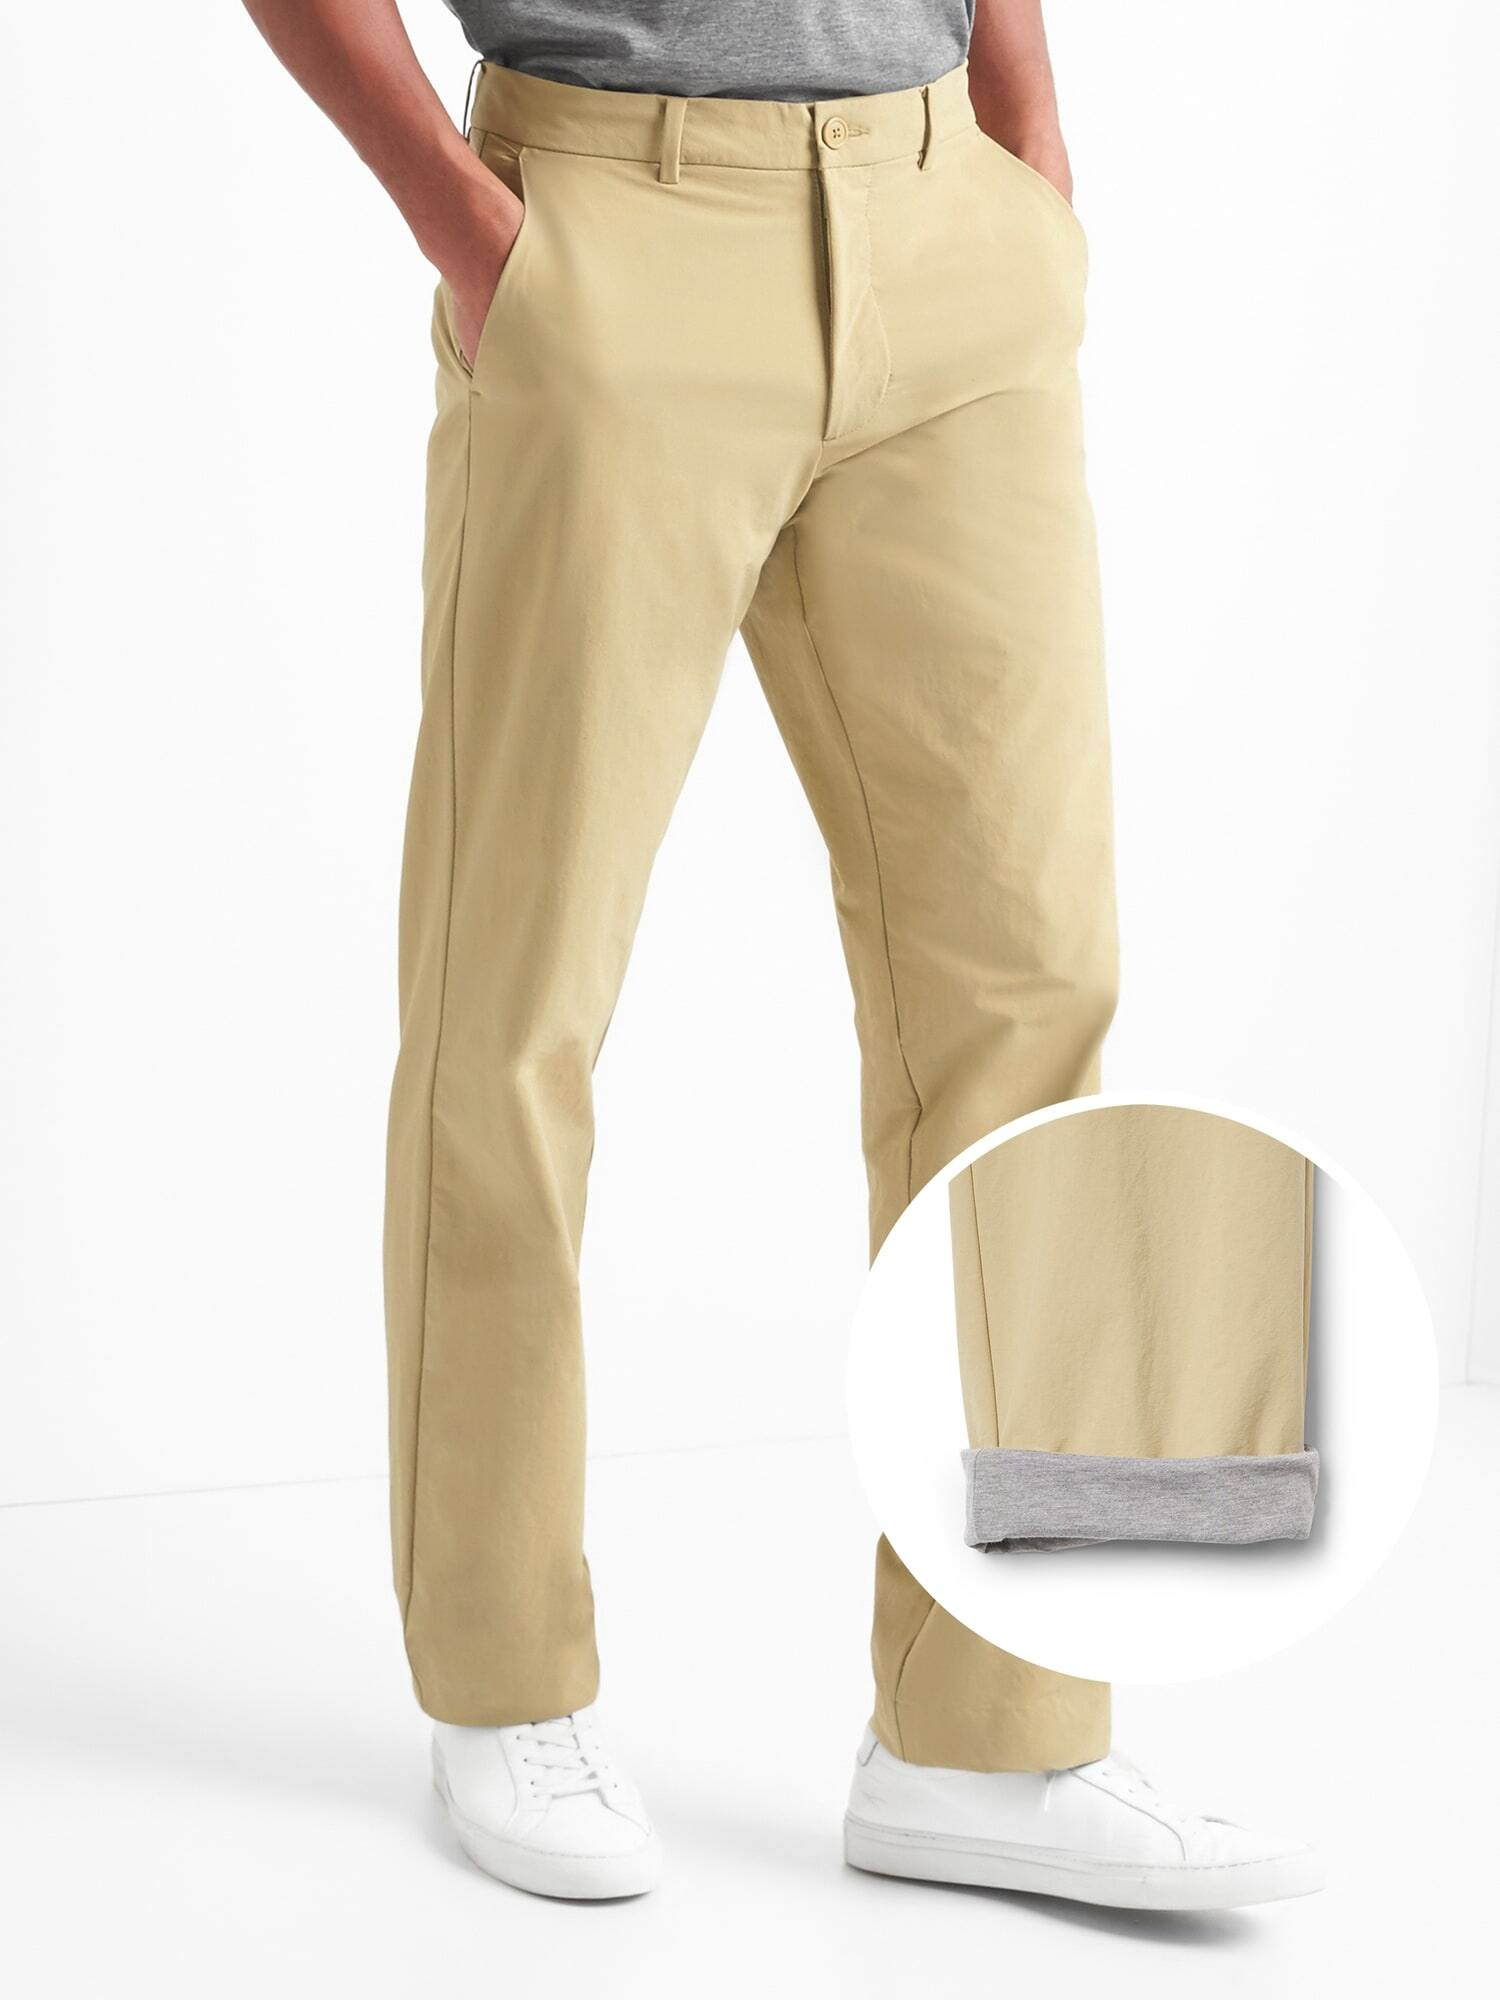 GapFit Men's Performance Khakis in Straight Fit with GapFlex $18.50, Brushed Cotton Pattern Pants in Slim Fit with GapFlex $14 + free shipping